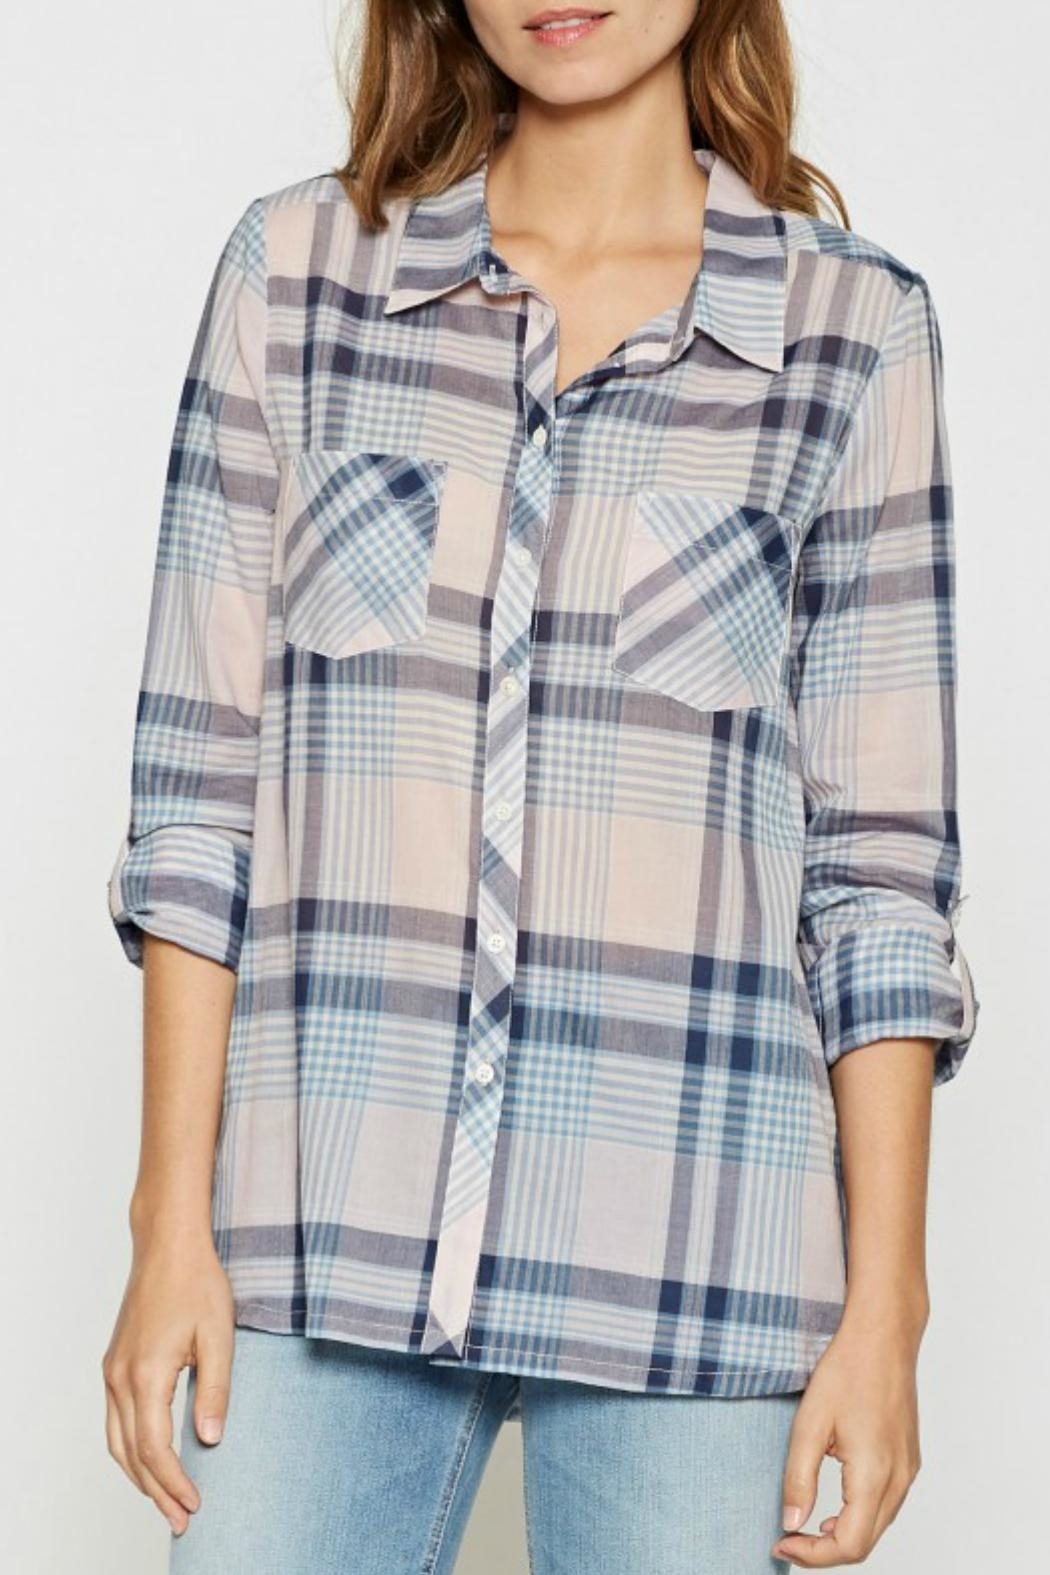 Joie Lilya Plaid Top - Front Cropped Image